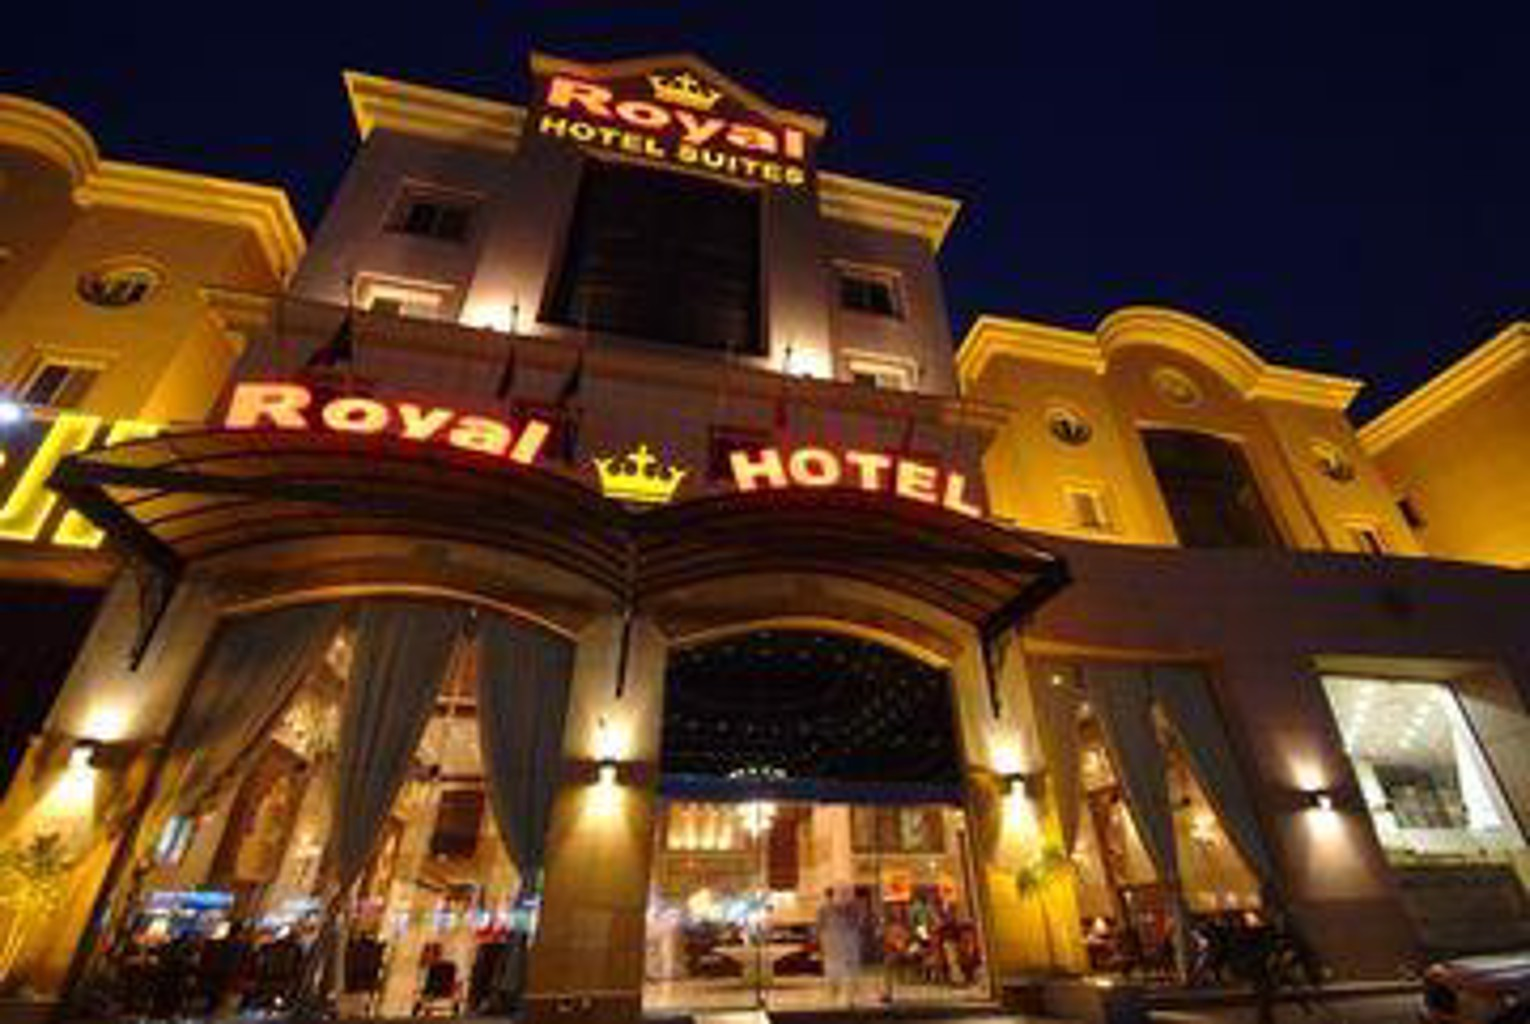 Royal Hotel And Suites